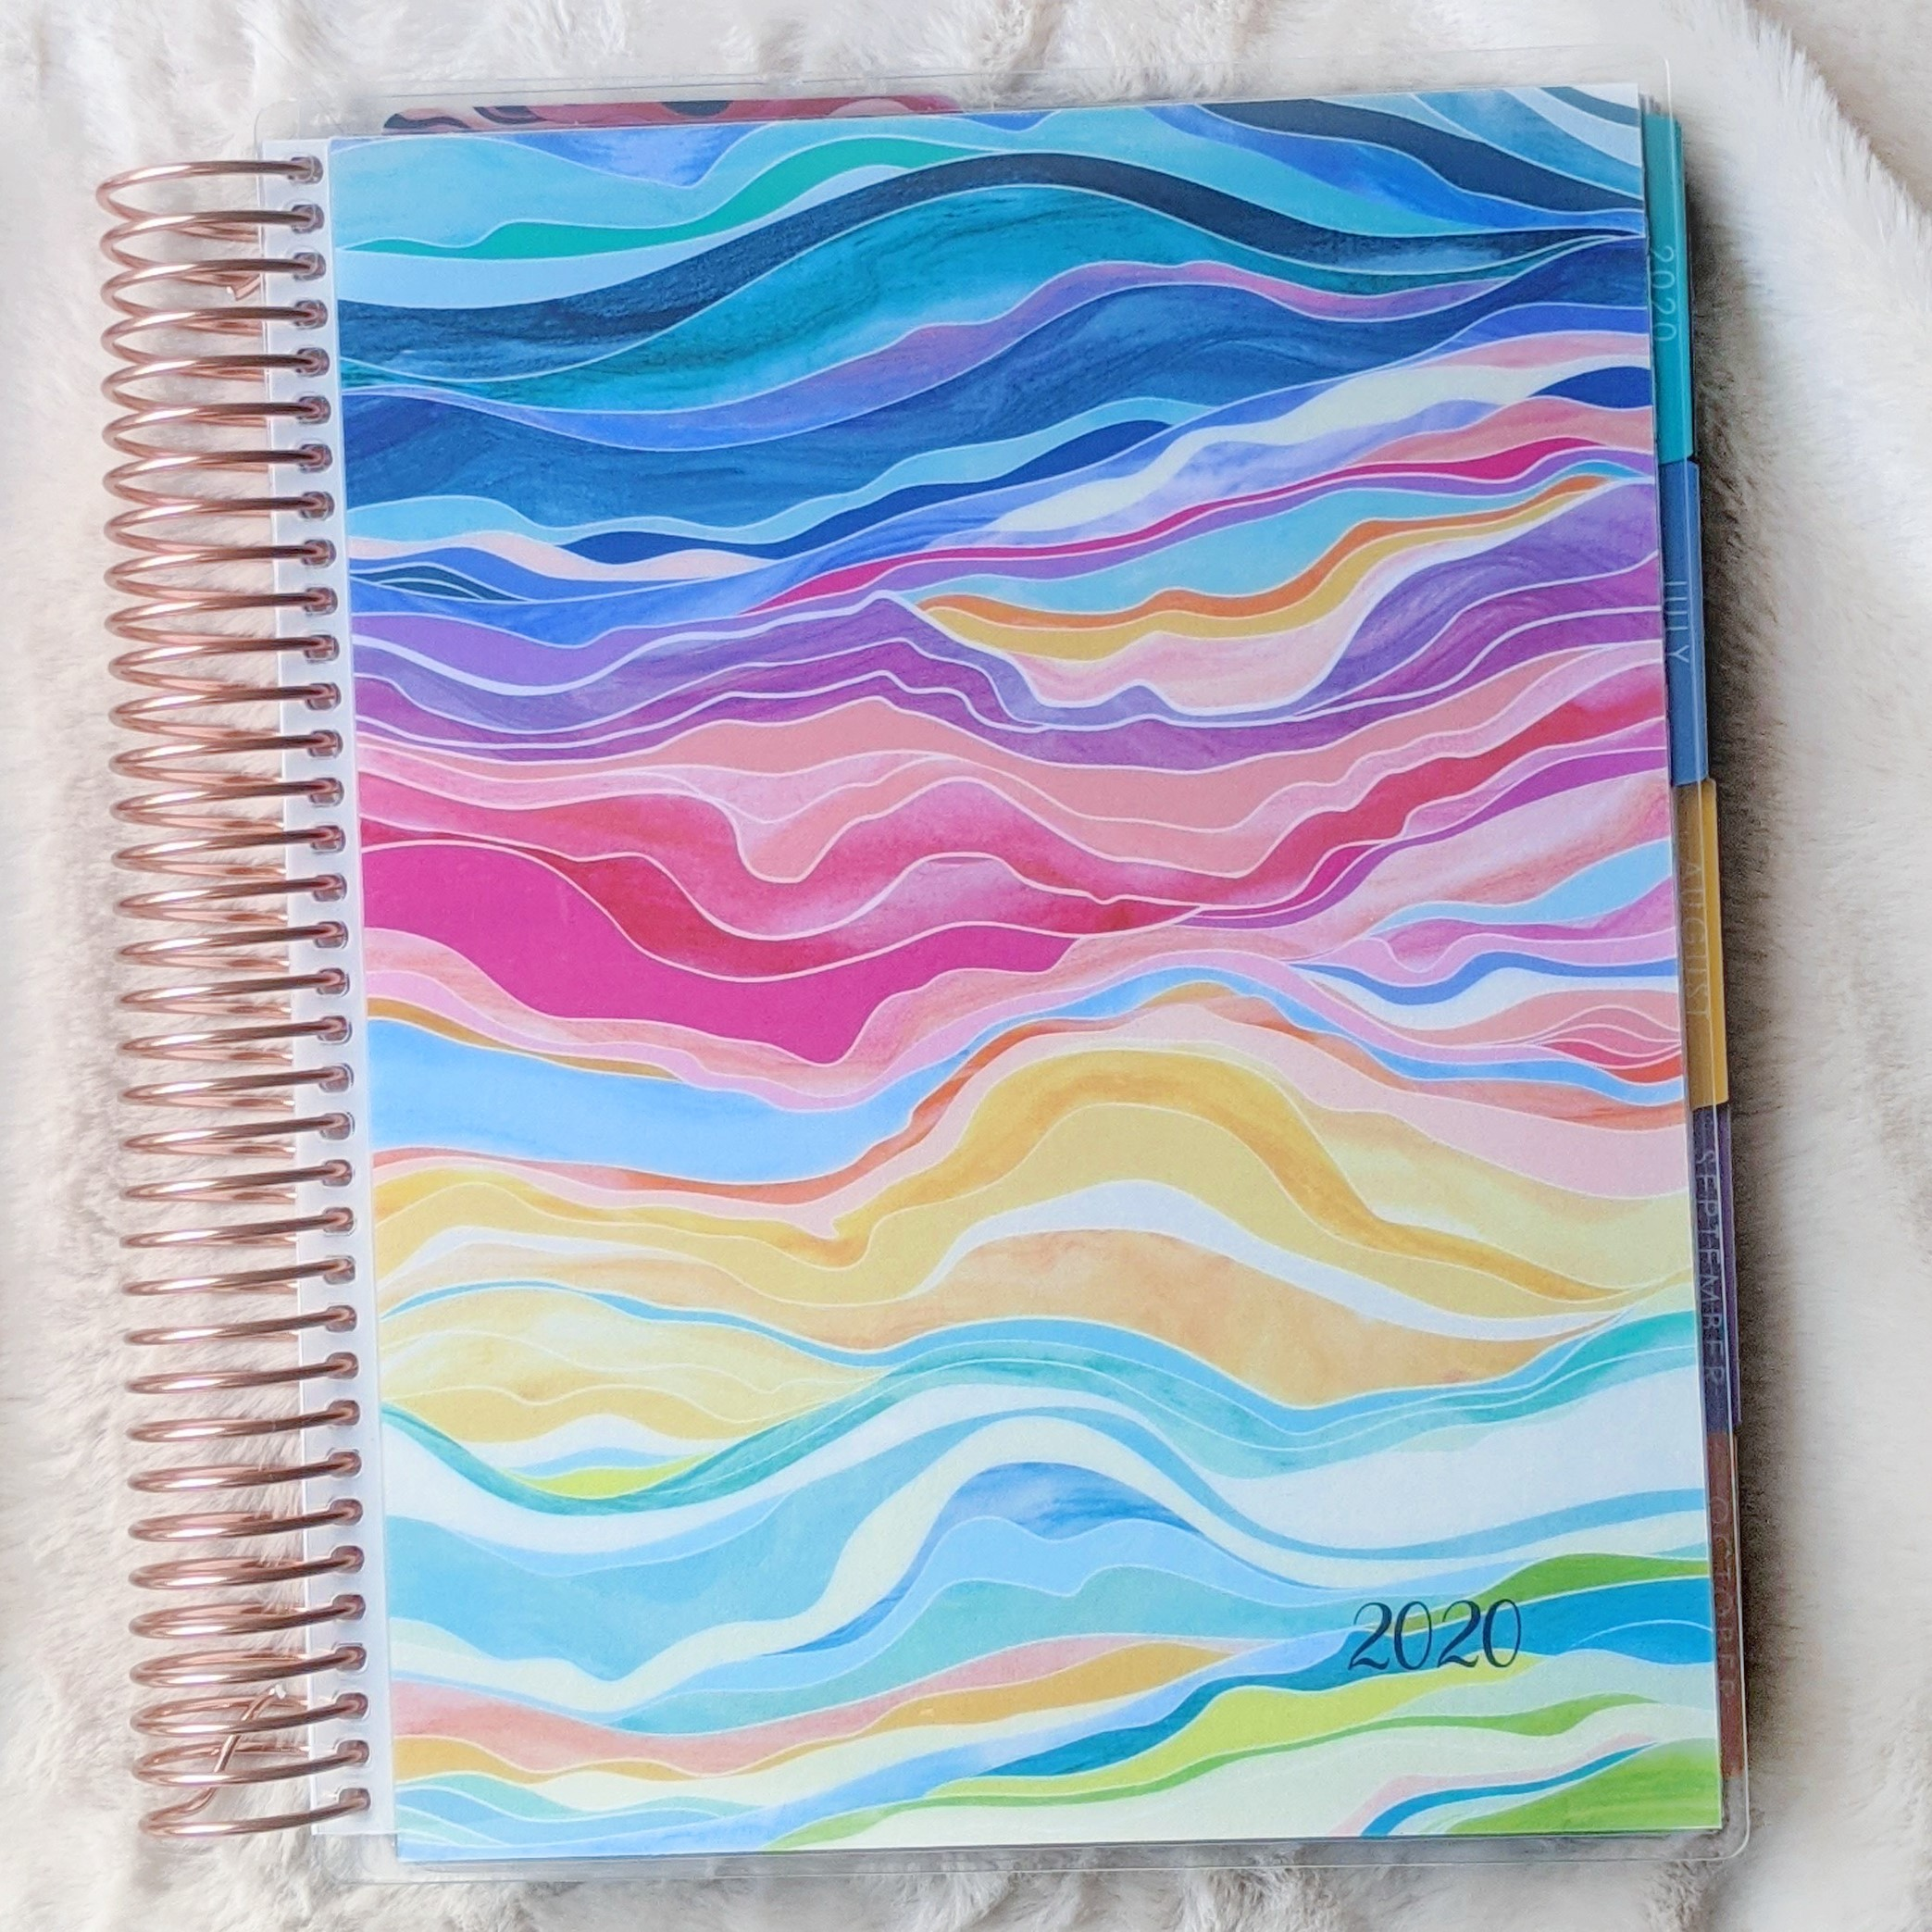 Erin Condren Daily LifePlanner in Colorful Layers cover design